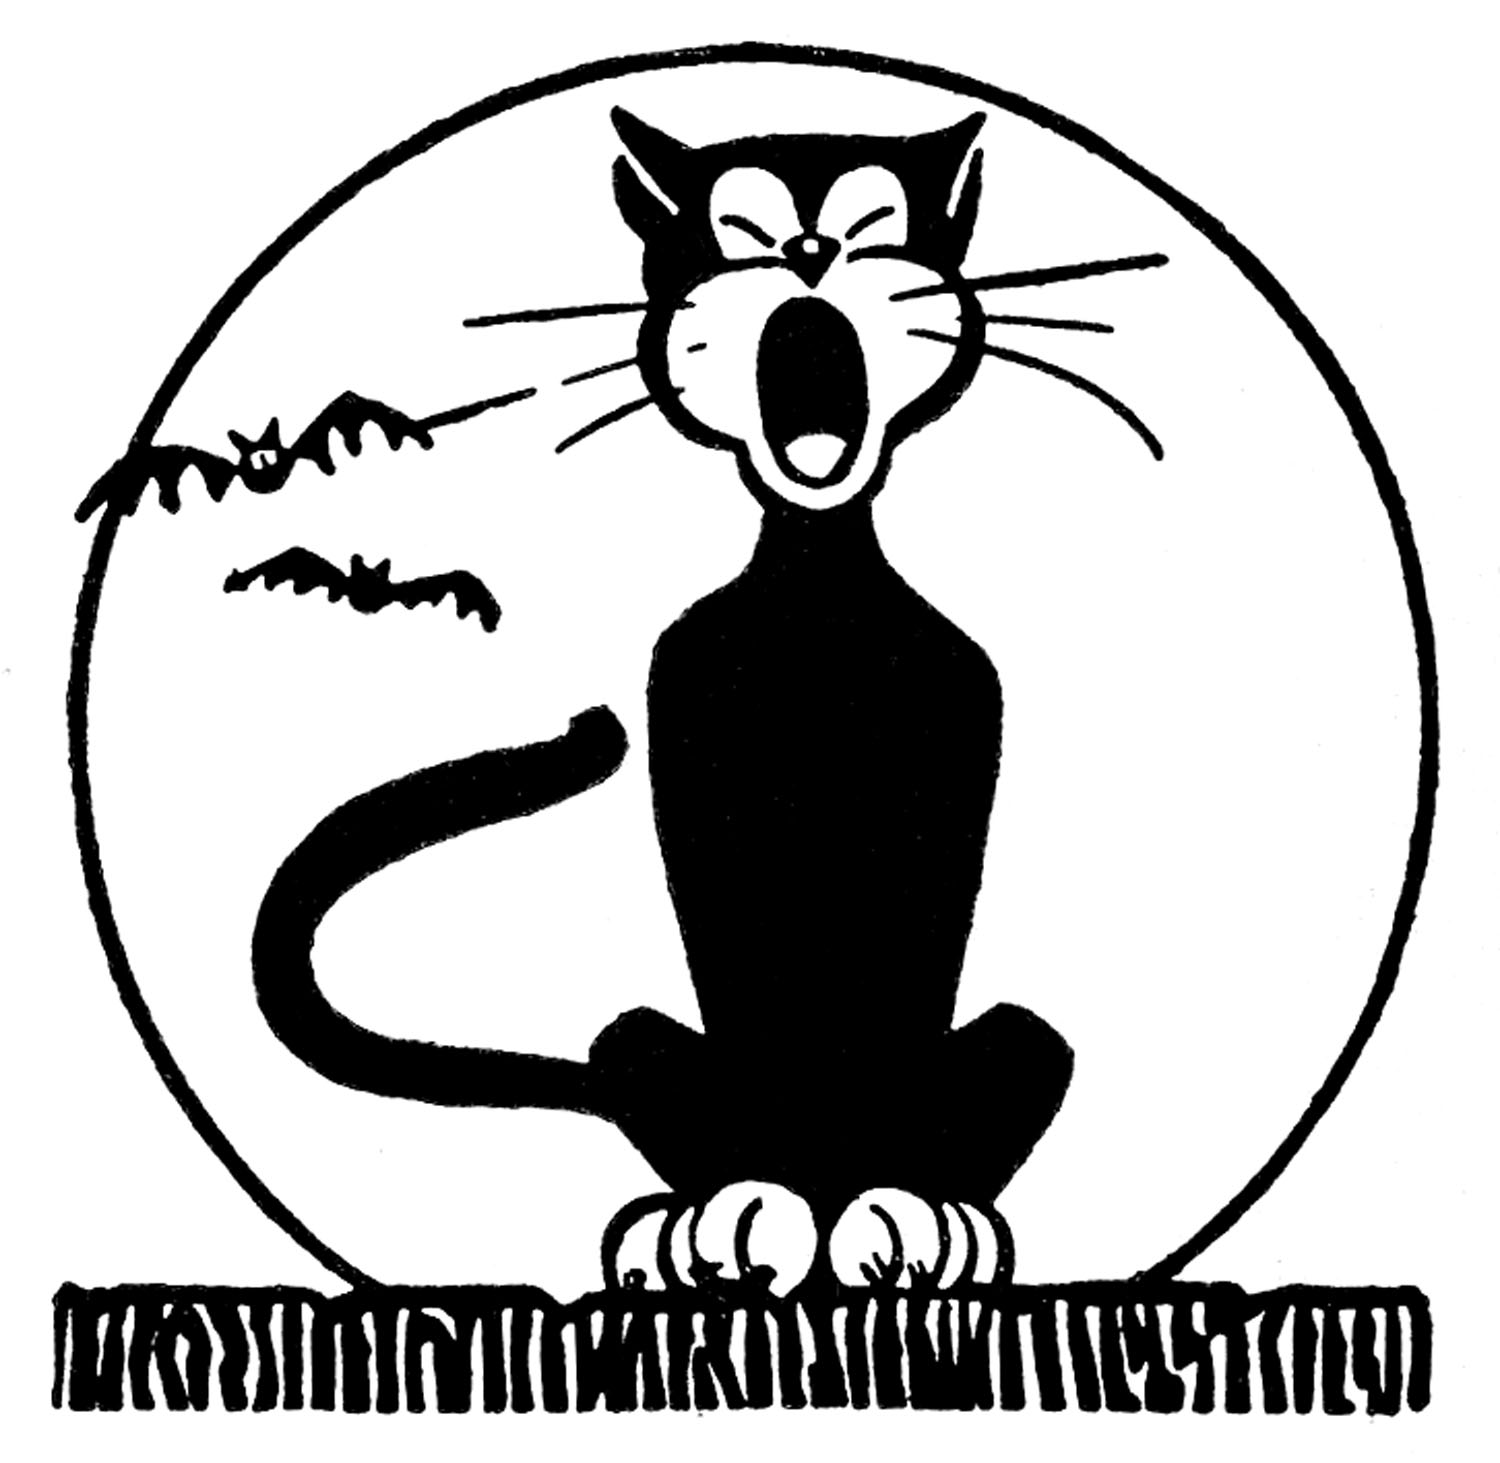 Cats musical clipart image transparent stock Free Singing Cats Cliparts, Download Free Clip Art, Free Clip Art on ... image transparent stock